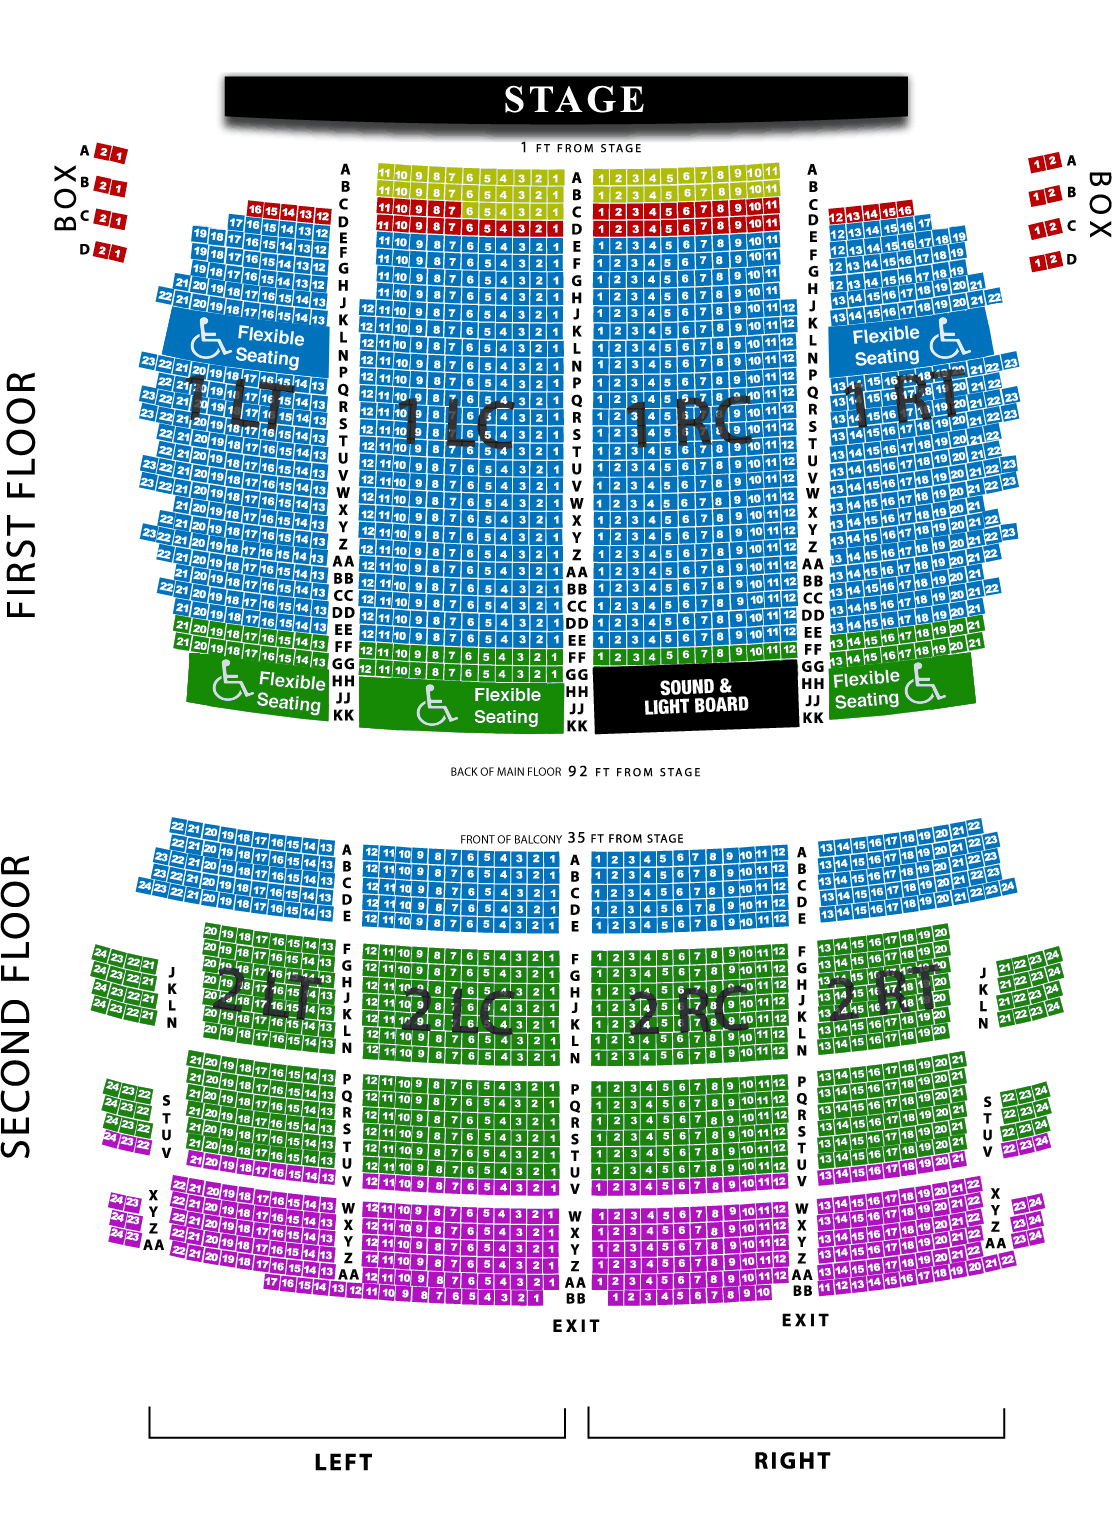 Riverside theater milwaukee tickets schedule seating charts